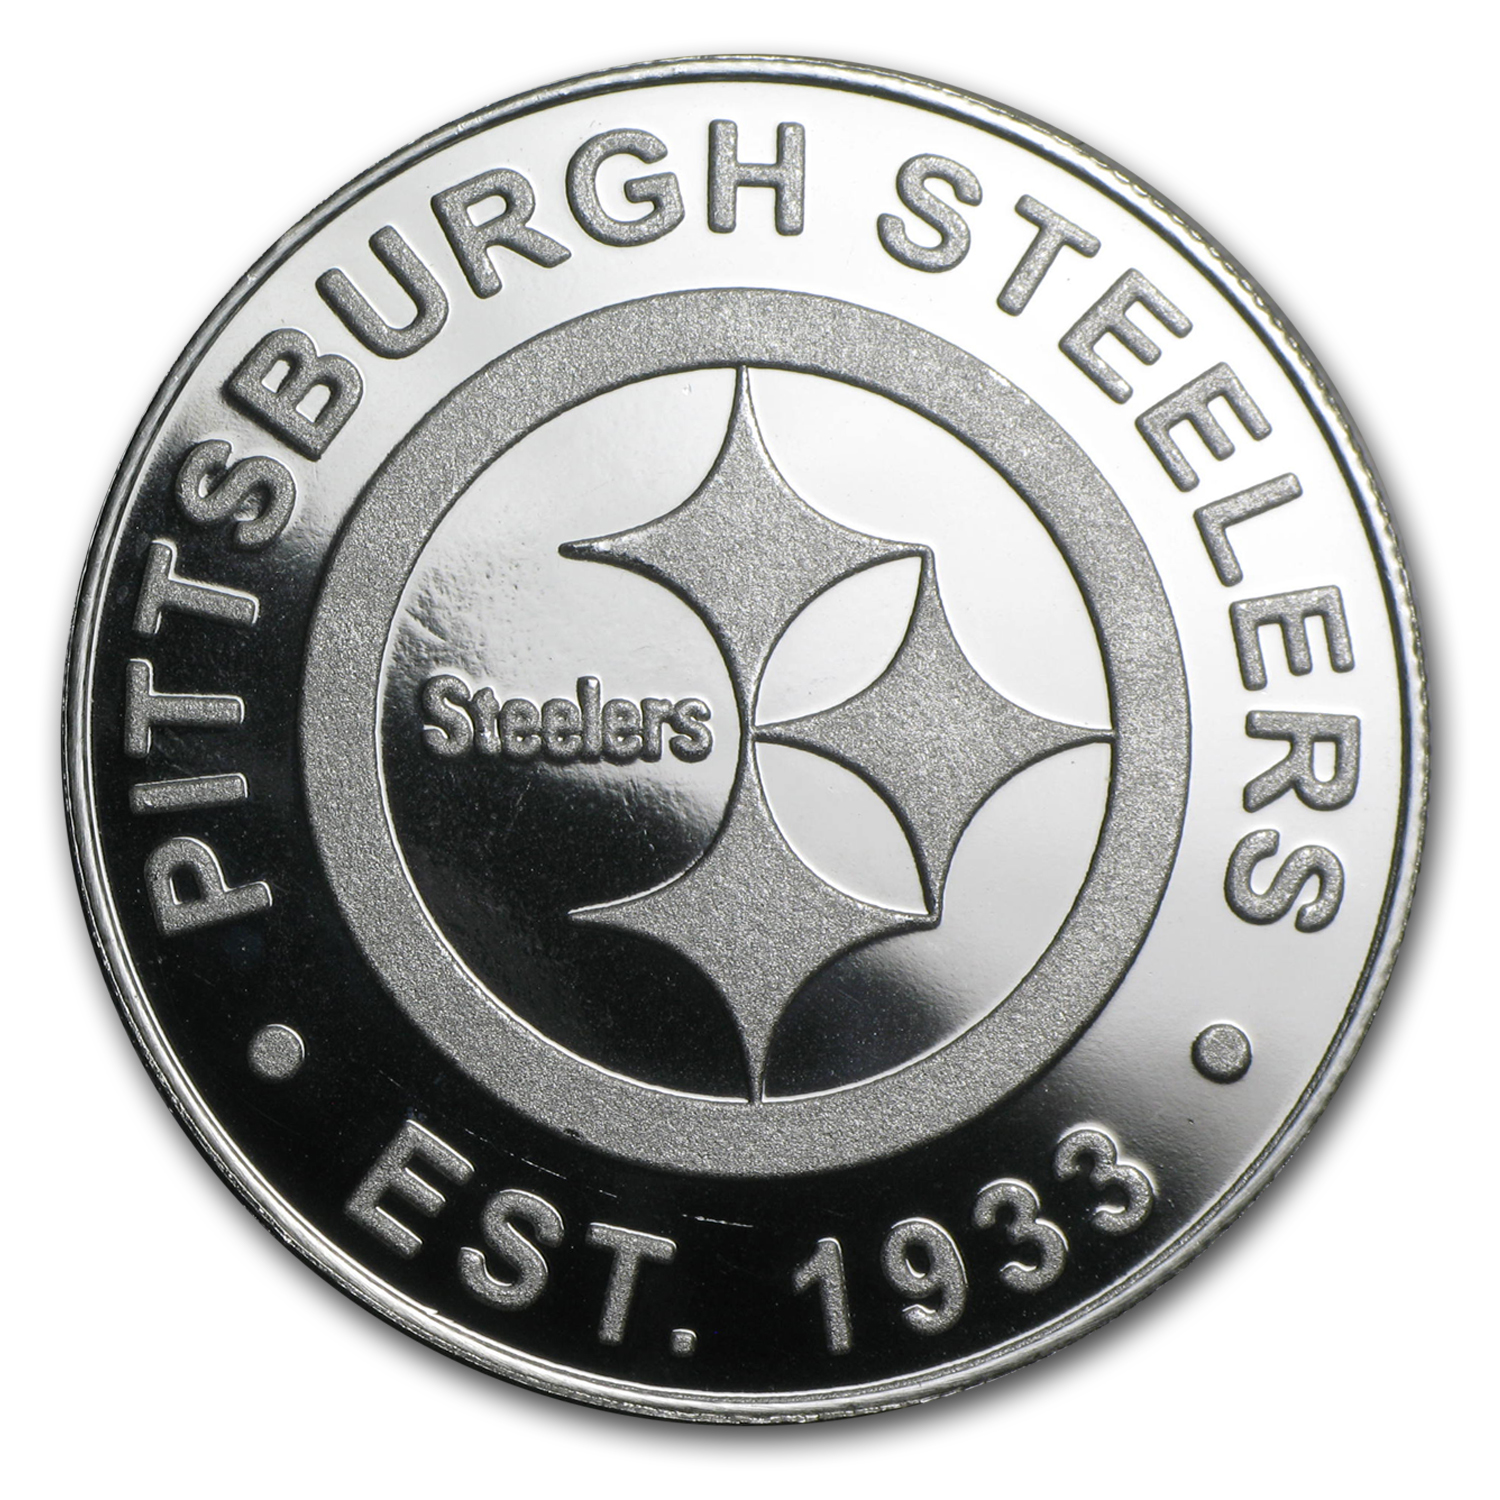 1 oz Silver Round - Pittsburgh Steelers